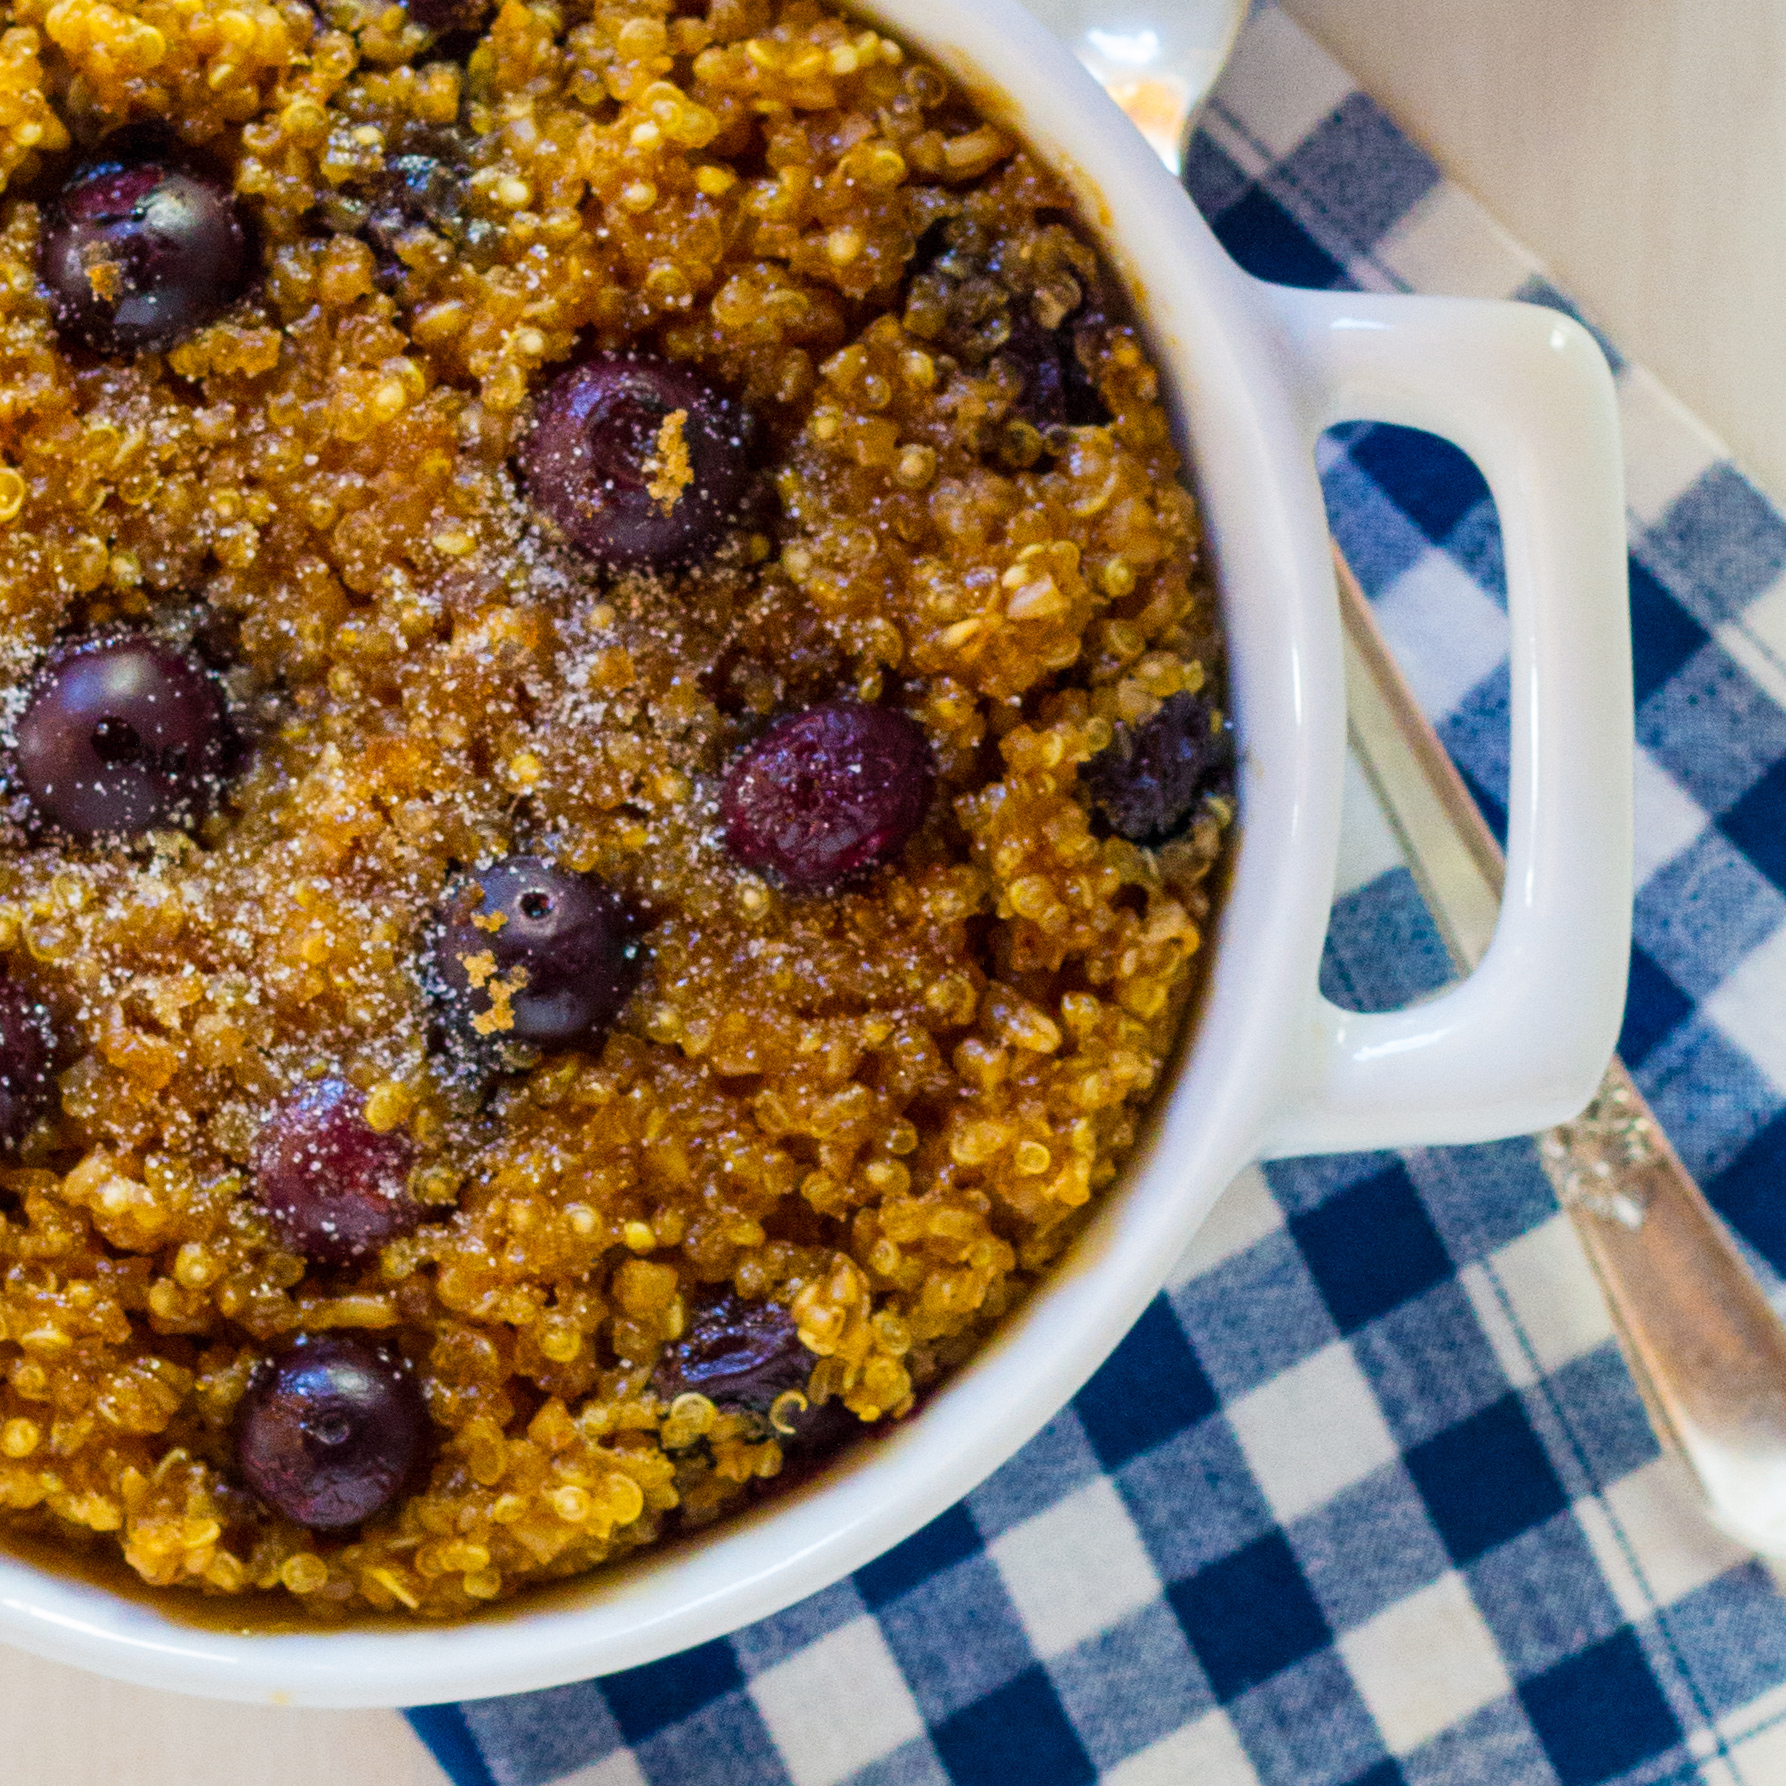 original-201311-r-blueberry-baked-quinoa-and-oatmeal.jpg